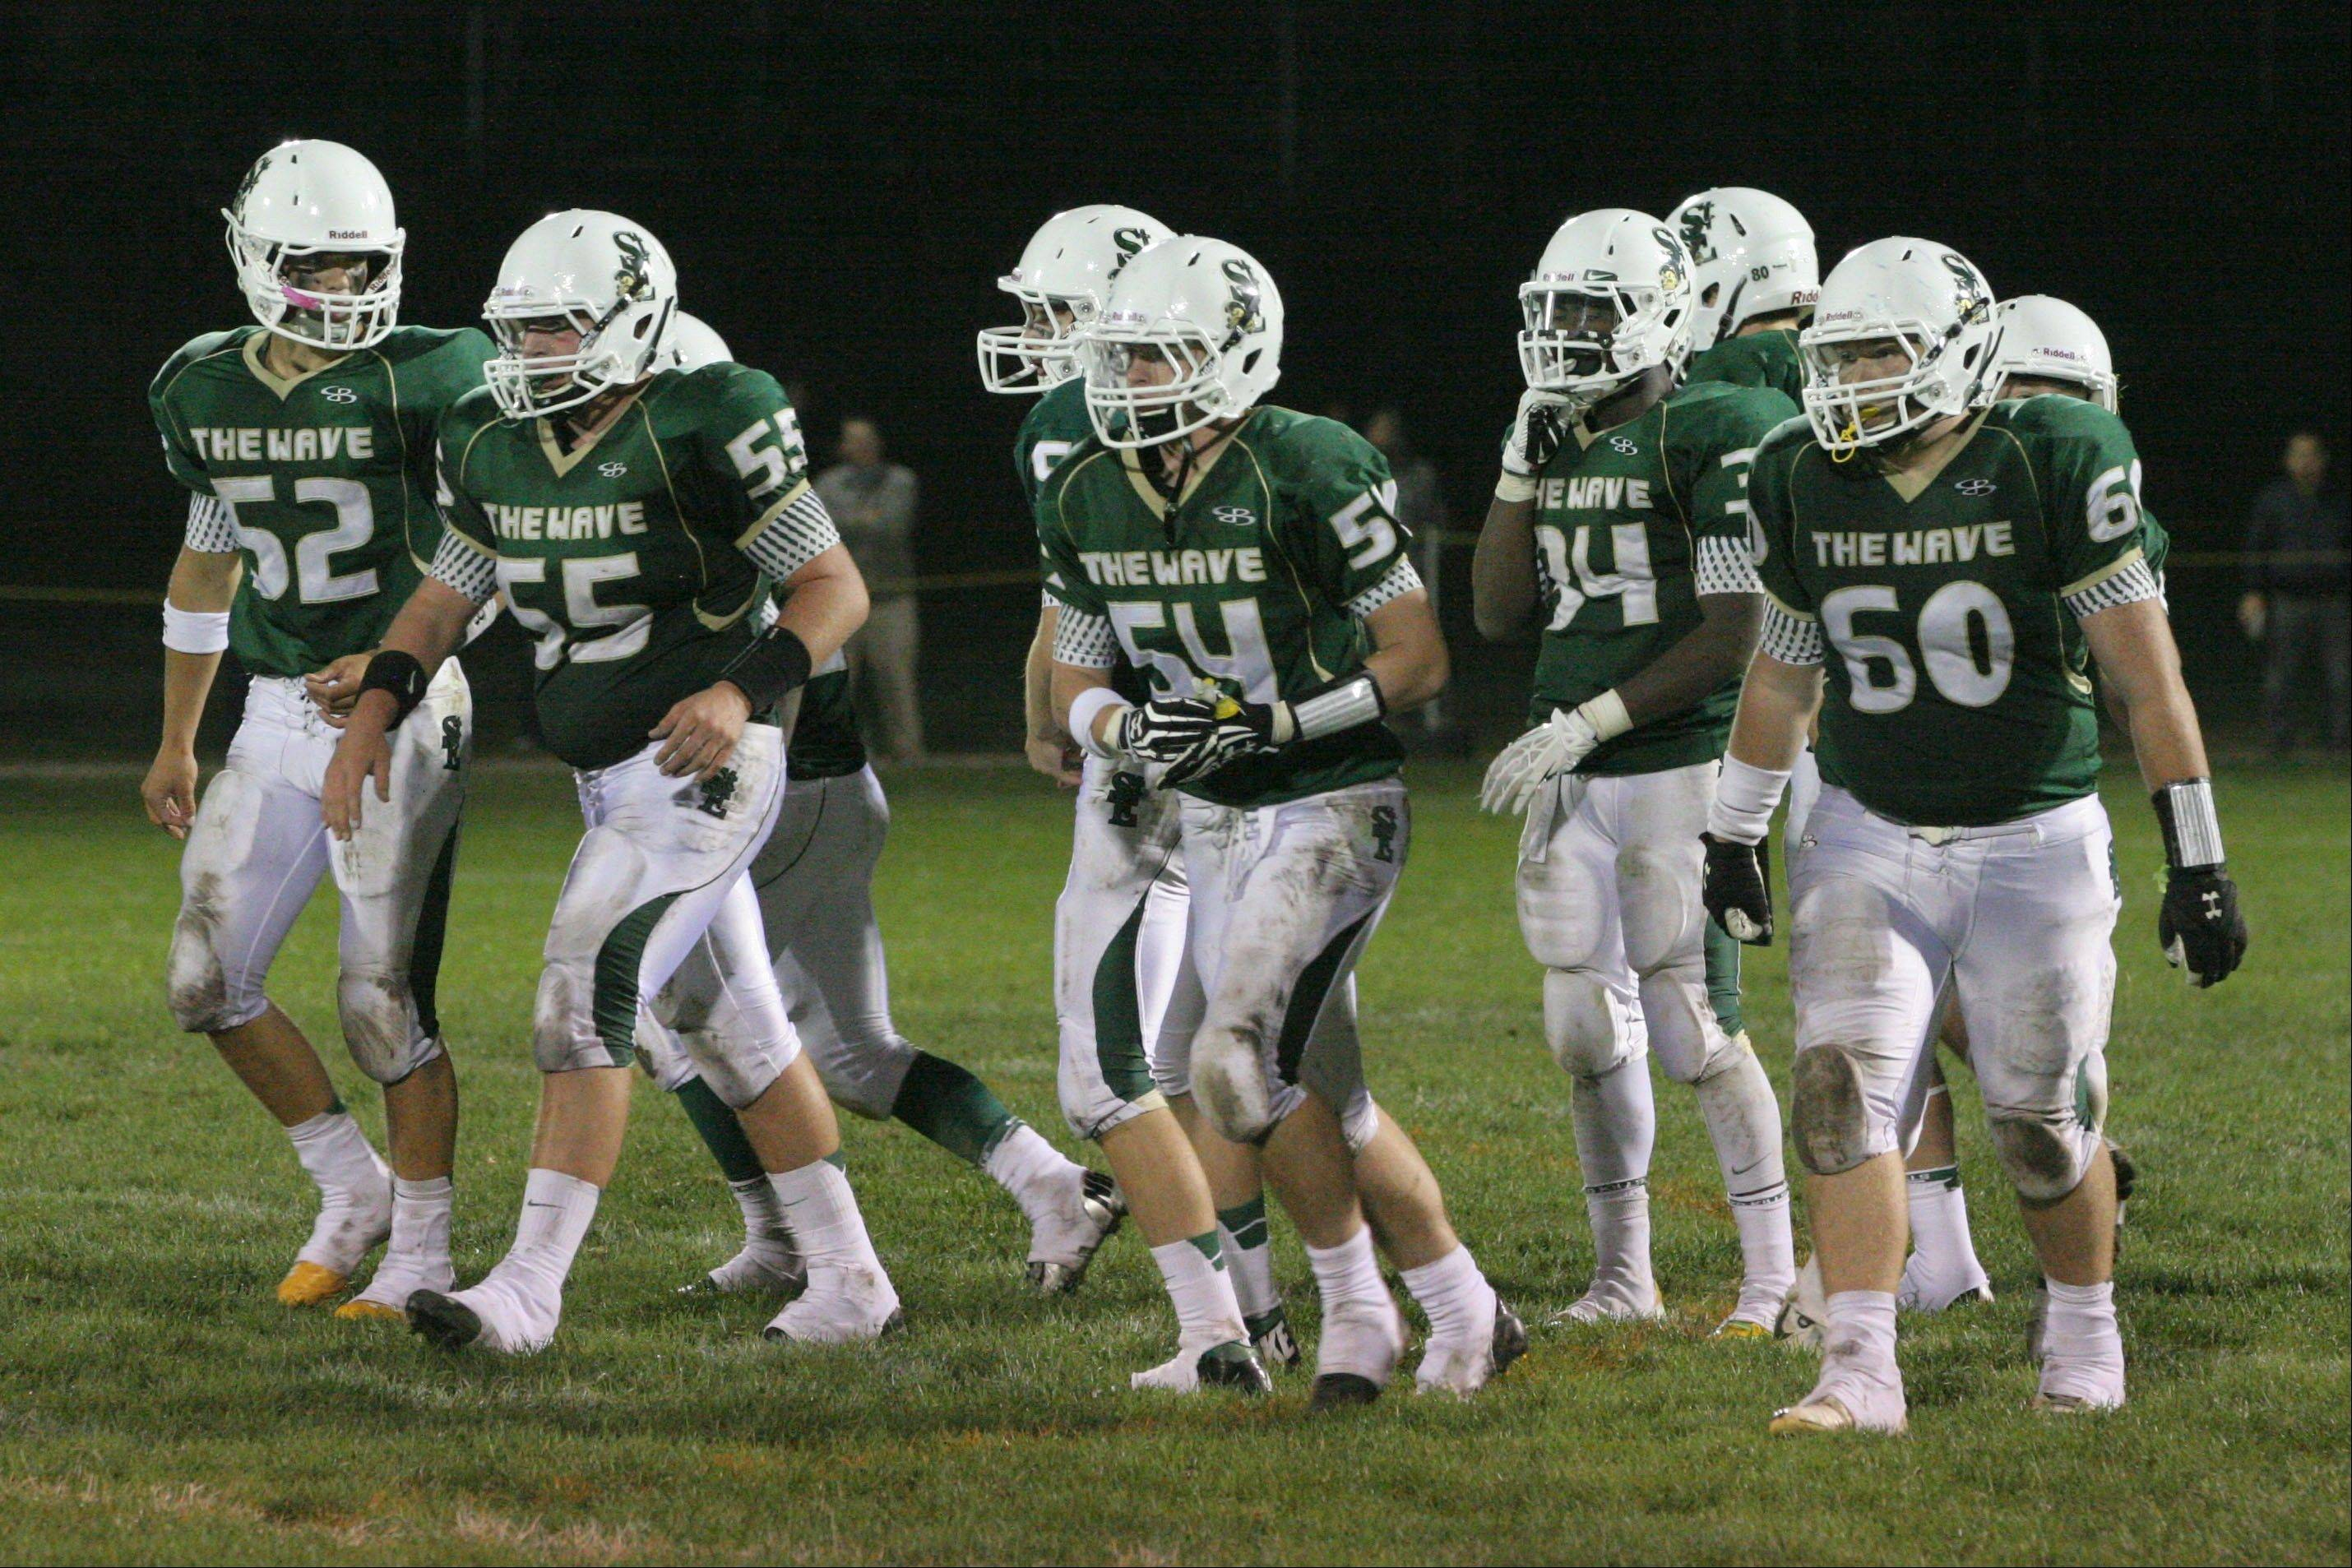 The St. Edward offensive line of Matthew Colasuono, from left, Collin Holte, Jack Tierney and Zach West lead senior running back DaVontae Elam (34) to the line of scrimmage against IC Catholic. St. Edward goes into Friday�s game against Chicago Christian at 3-2 for the season.